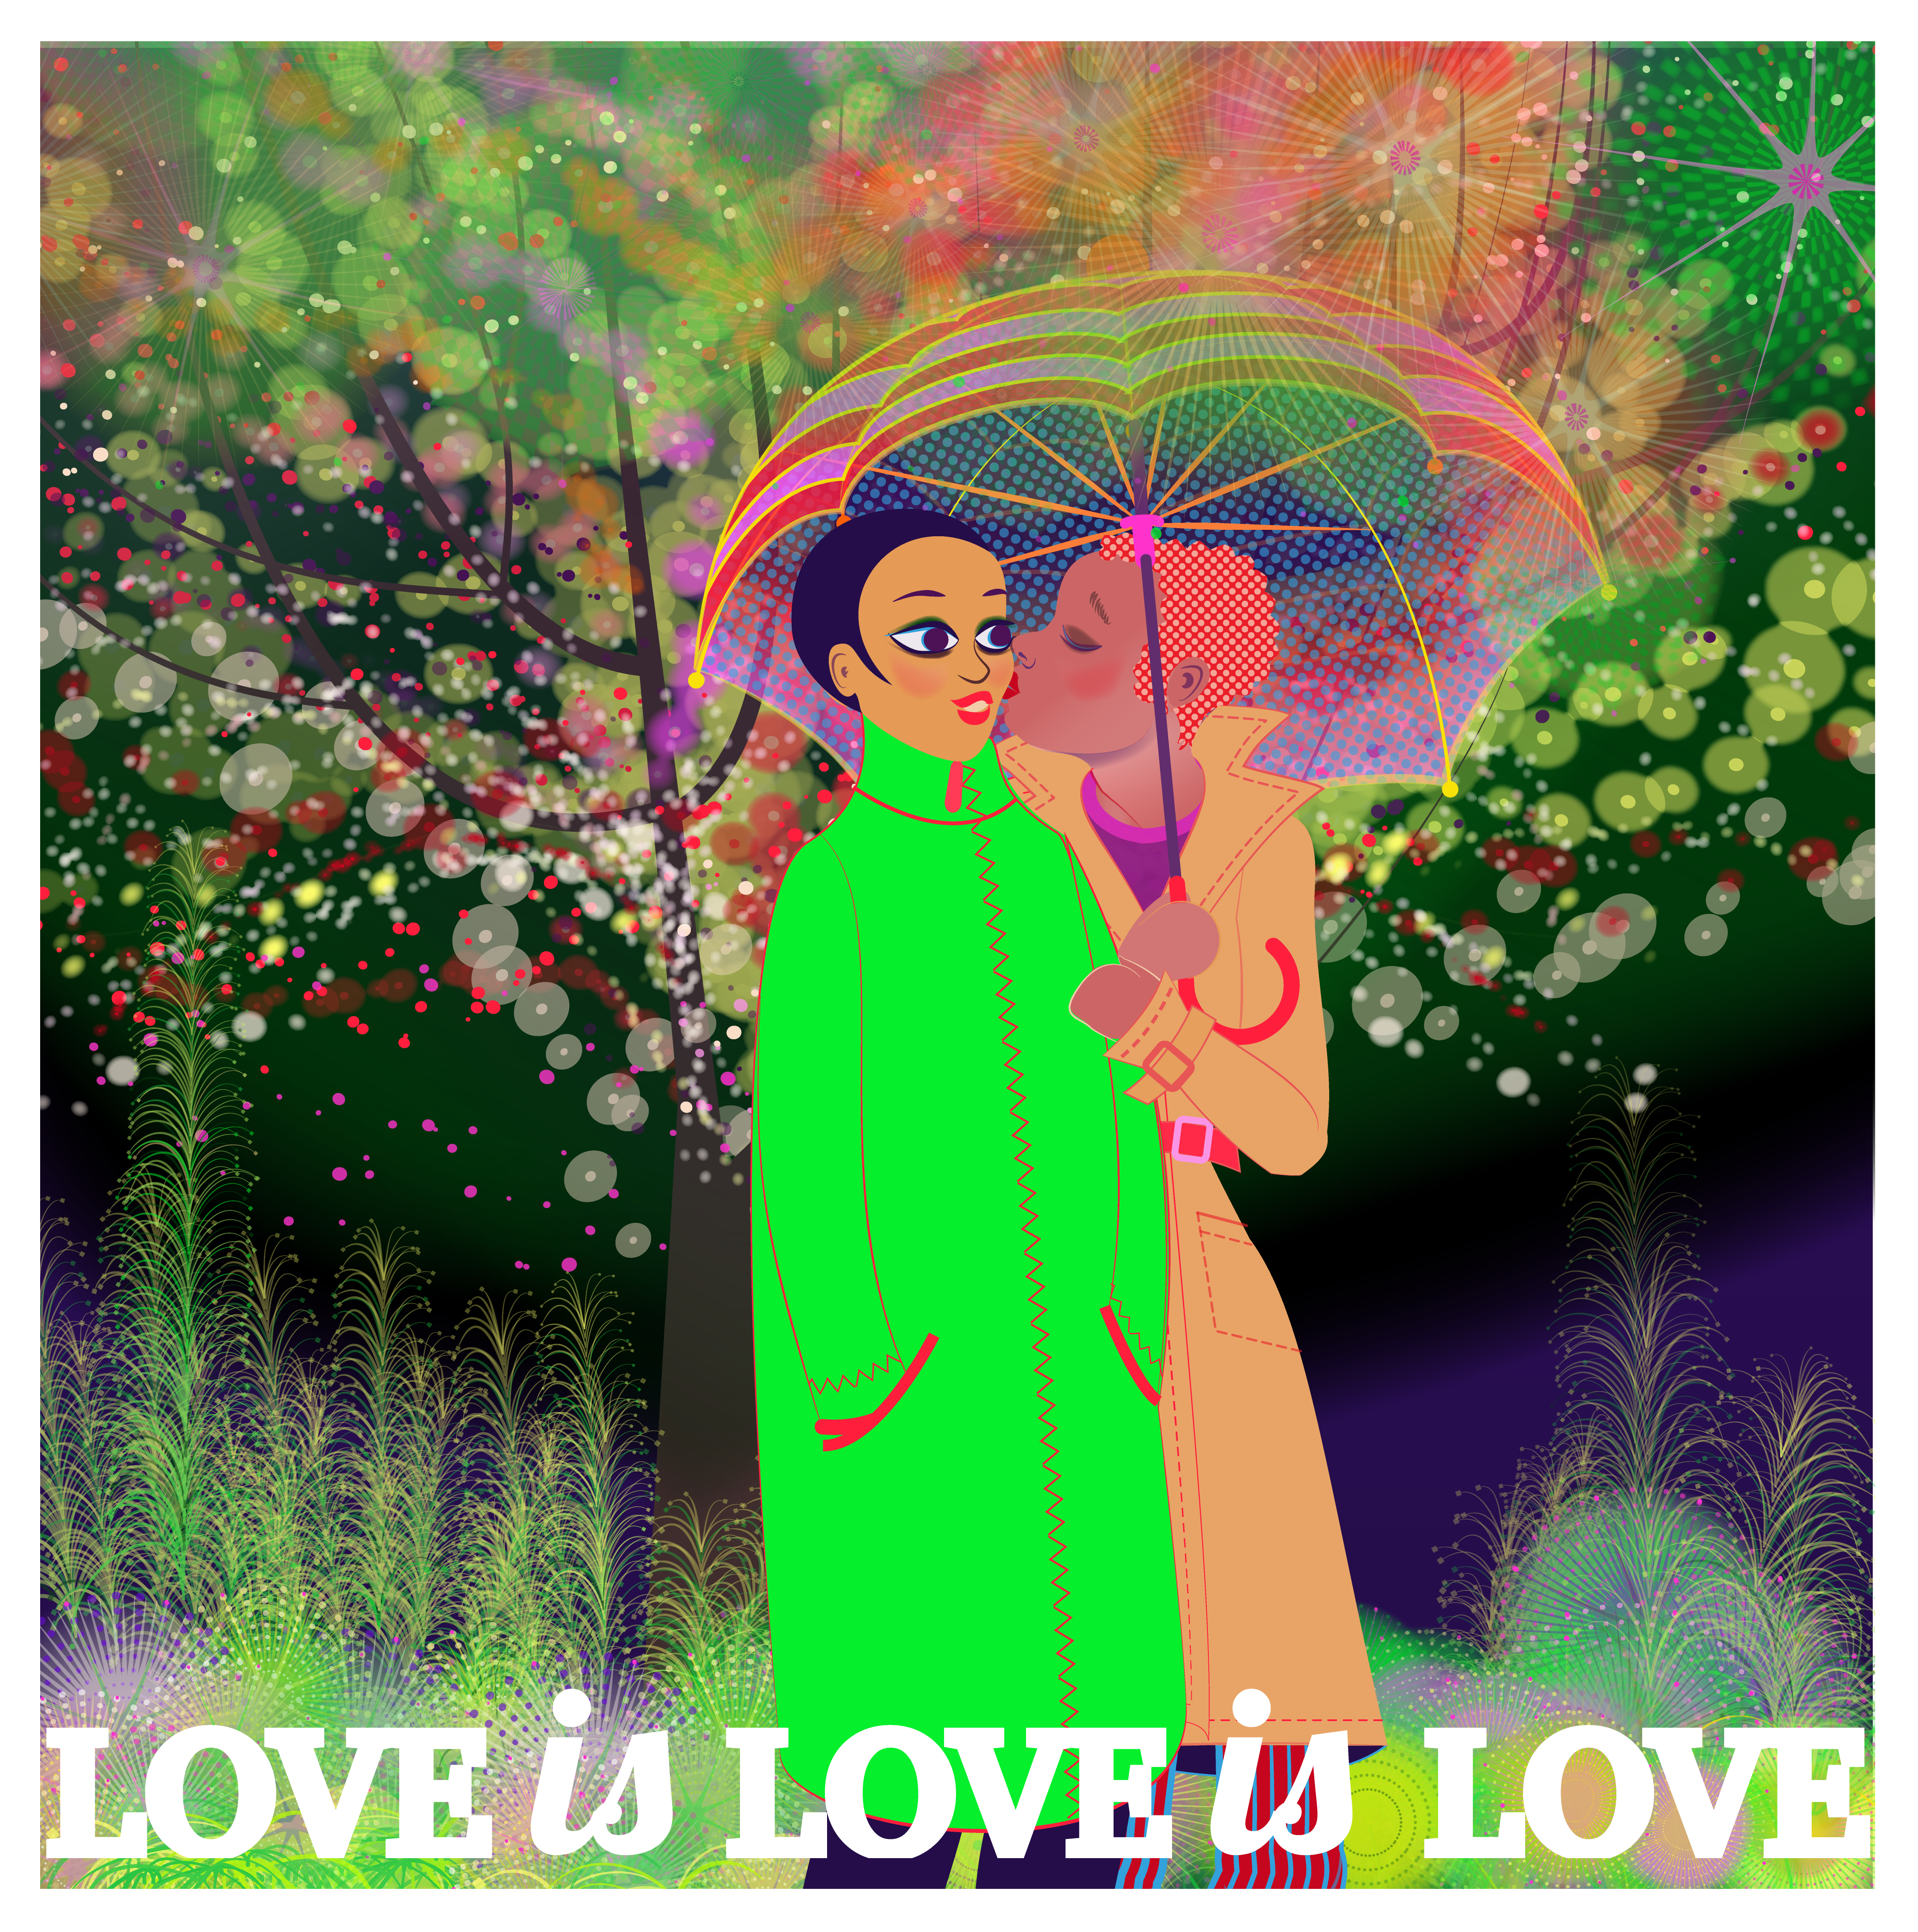 Aditi Raychoudhury. Love is Love is Love. 2018. Adobe Illustrator